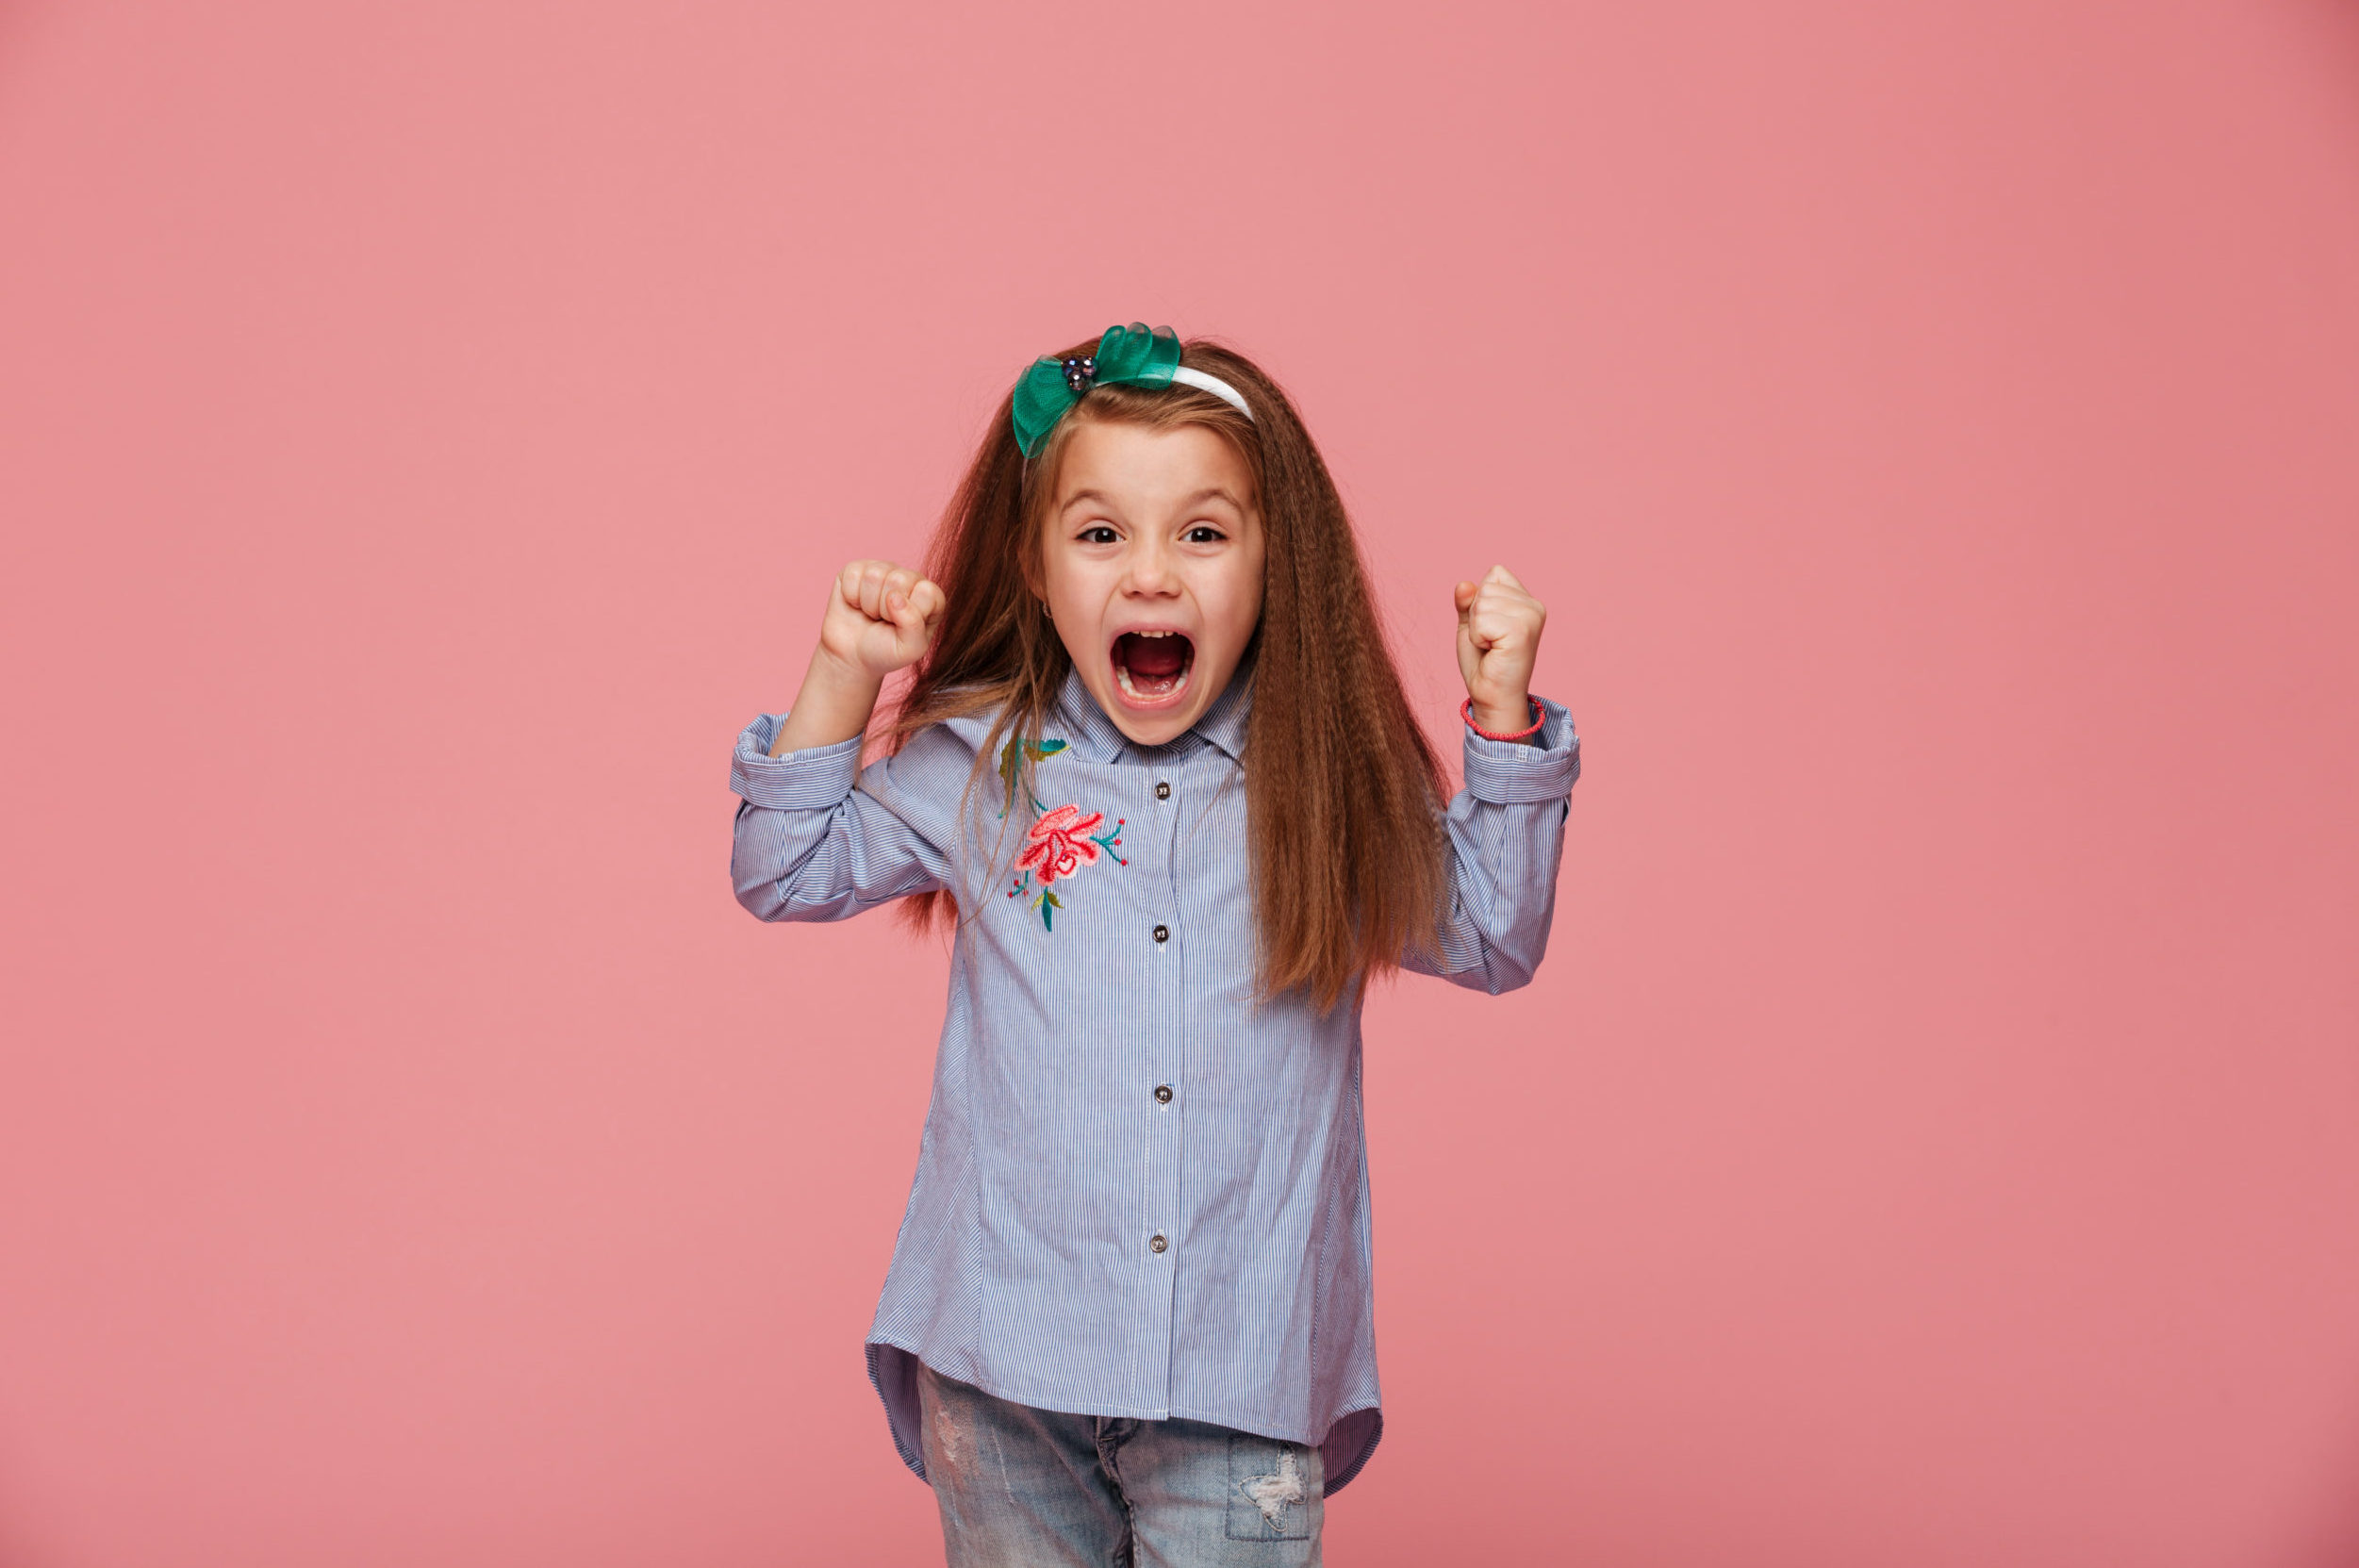 Beautiful female kid in hair hoop and fashion clothes clenching fists, shouting with happiness and admiration against pink background